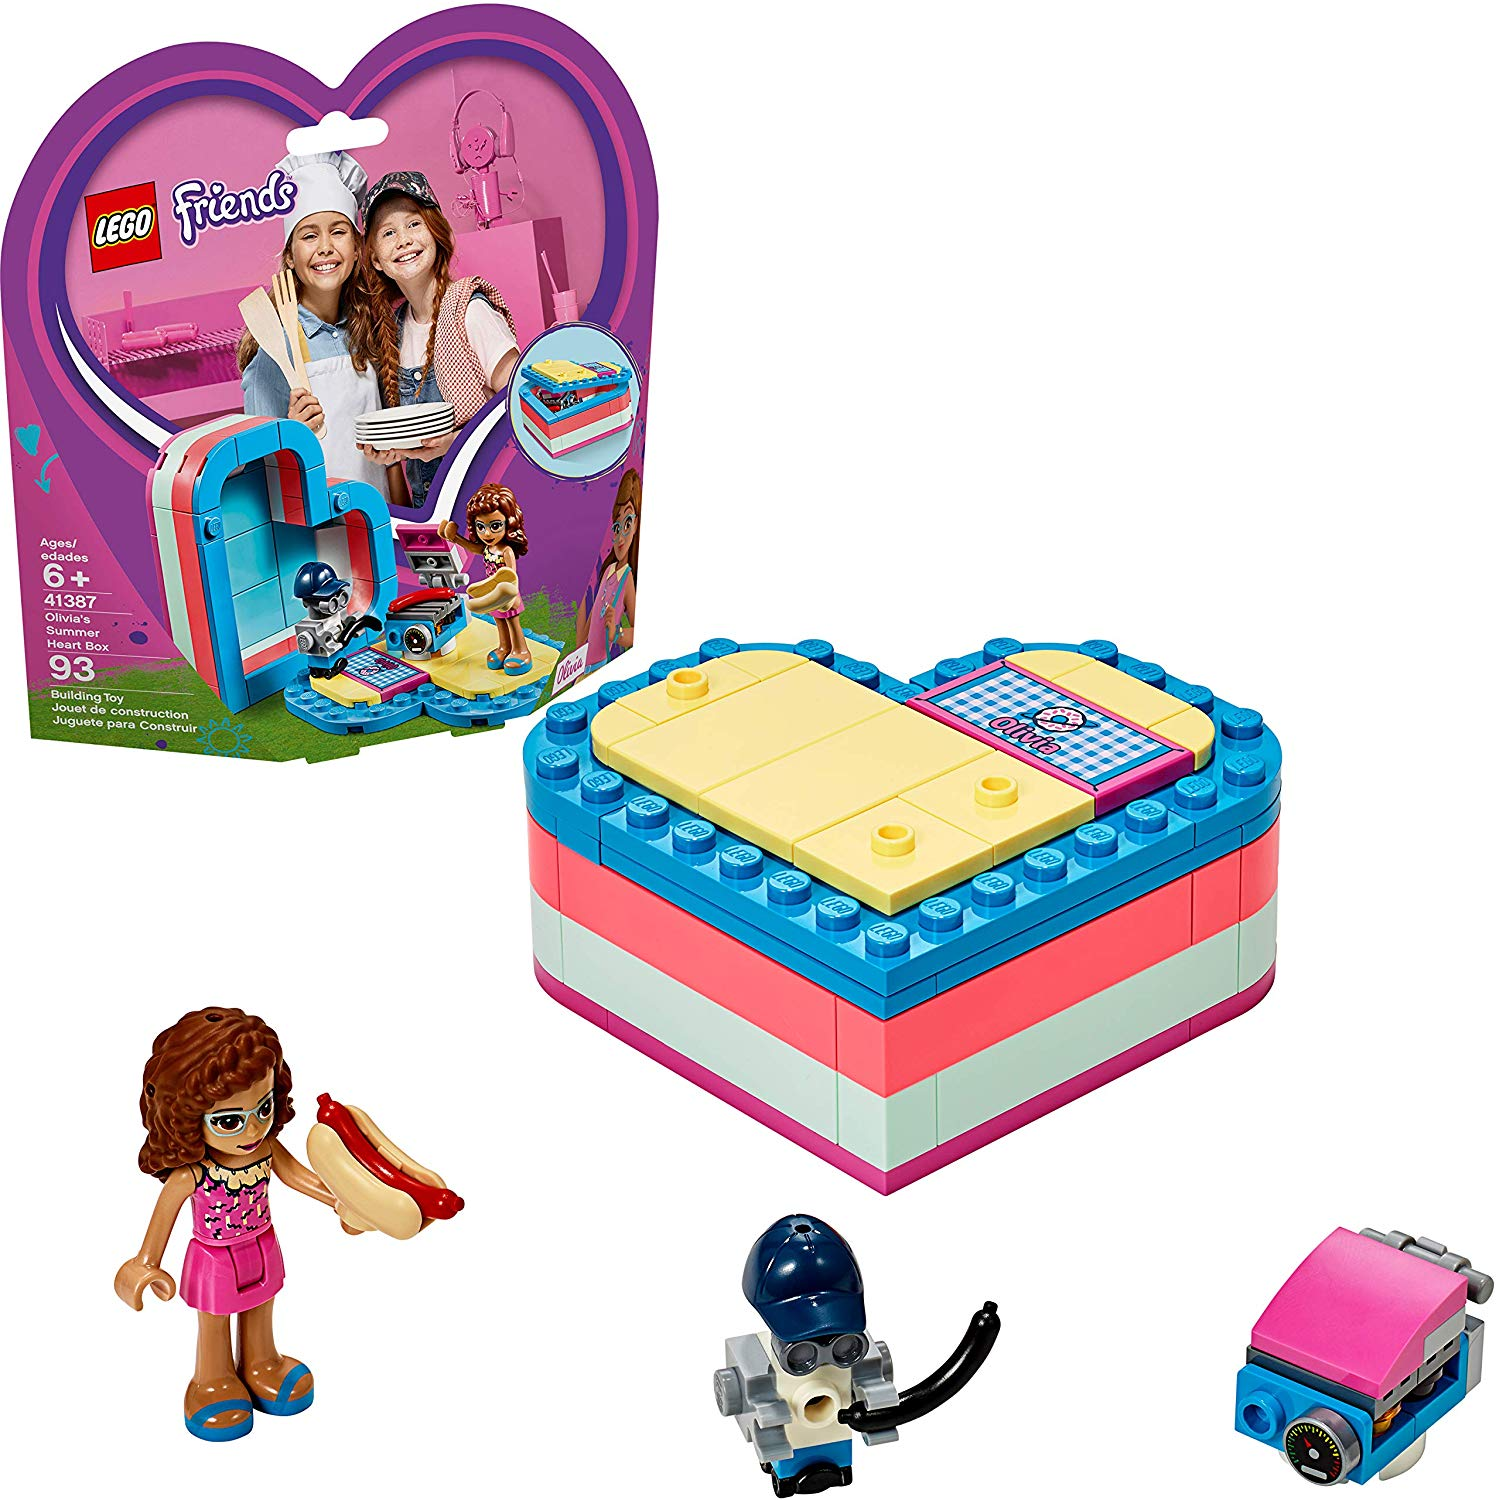 Head to the beach for a summer barbecue with LEGO Friends Olivia's Summer Heart Box. Let your little one pretend to hang out at the beach with Olivia. The Heart Box includes a cute toy BBQ for Olivia and her robot Zobo to enjoy hot dogs on the beach. It comes in Olivia's colors and features a decorated name tile in the design of a beach towel.